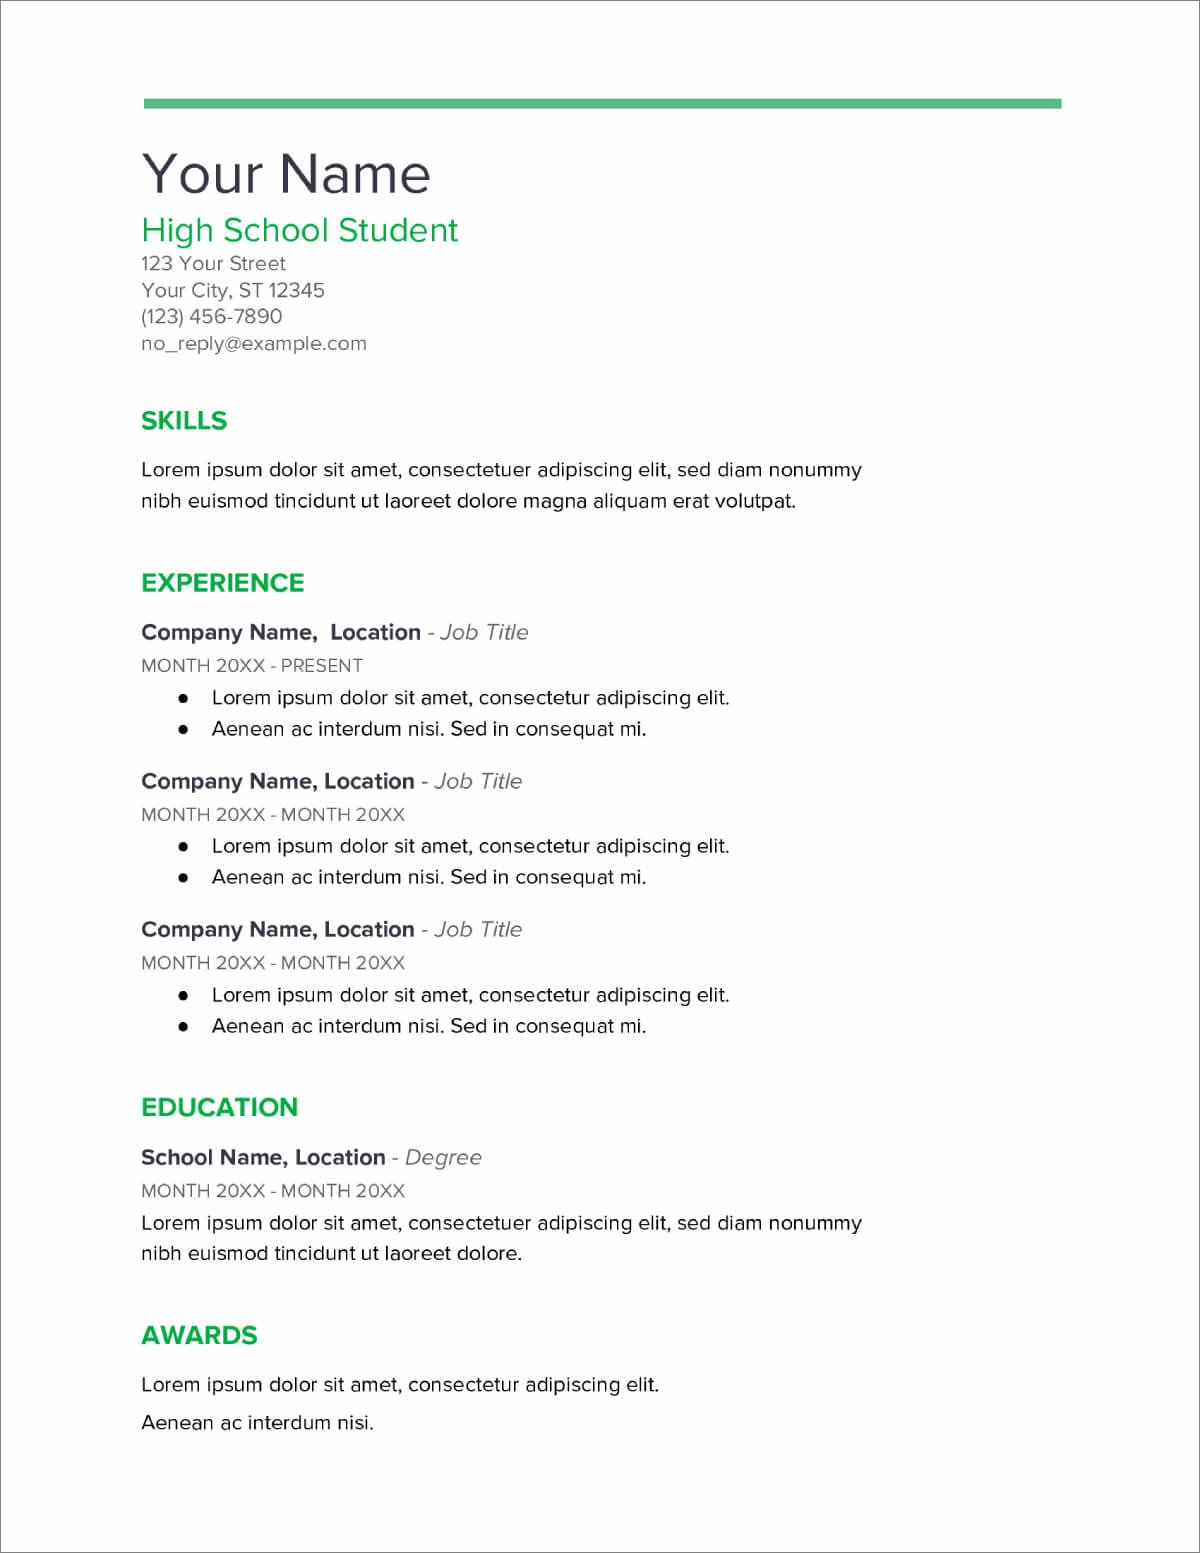 high school resume templates now blank template for students brand manager uga upwardly Resume Blank Resume Template For High School Students